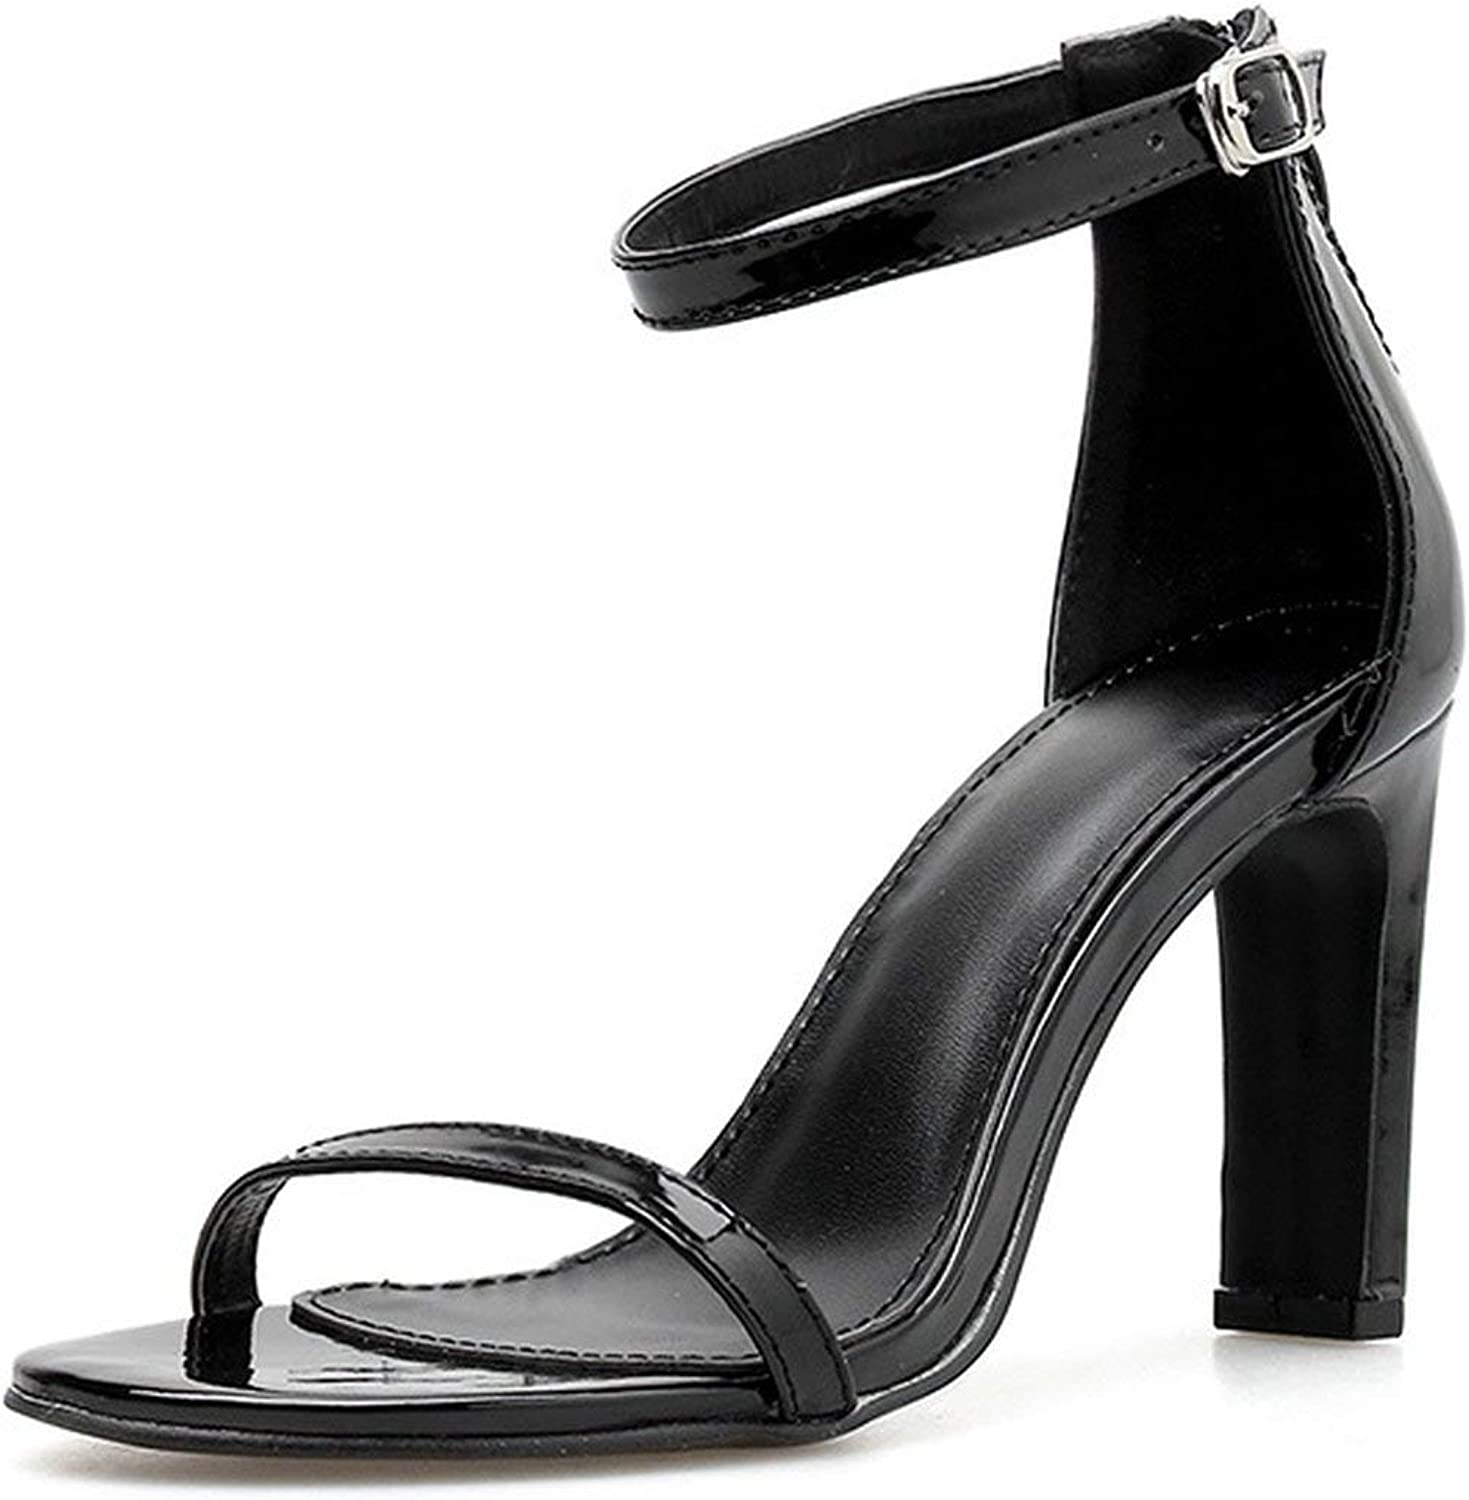 Sandals Women 2019 Summer Women's shoes New Women's shoes with Sexy Straps, Super High Heel, Open Toe and Thick Heel Sandals